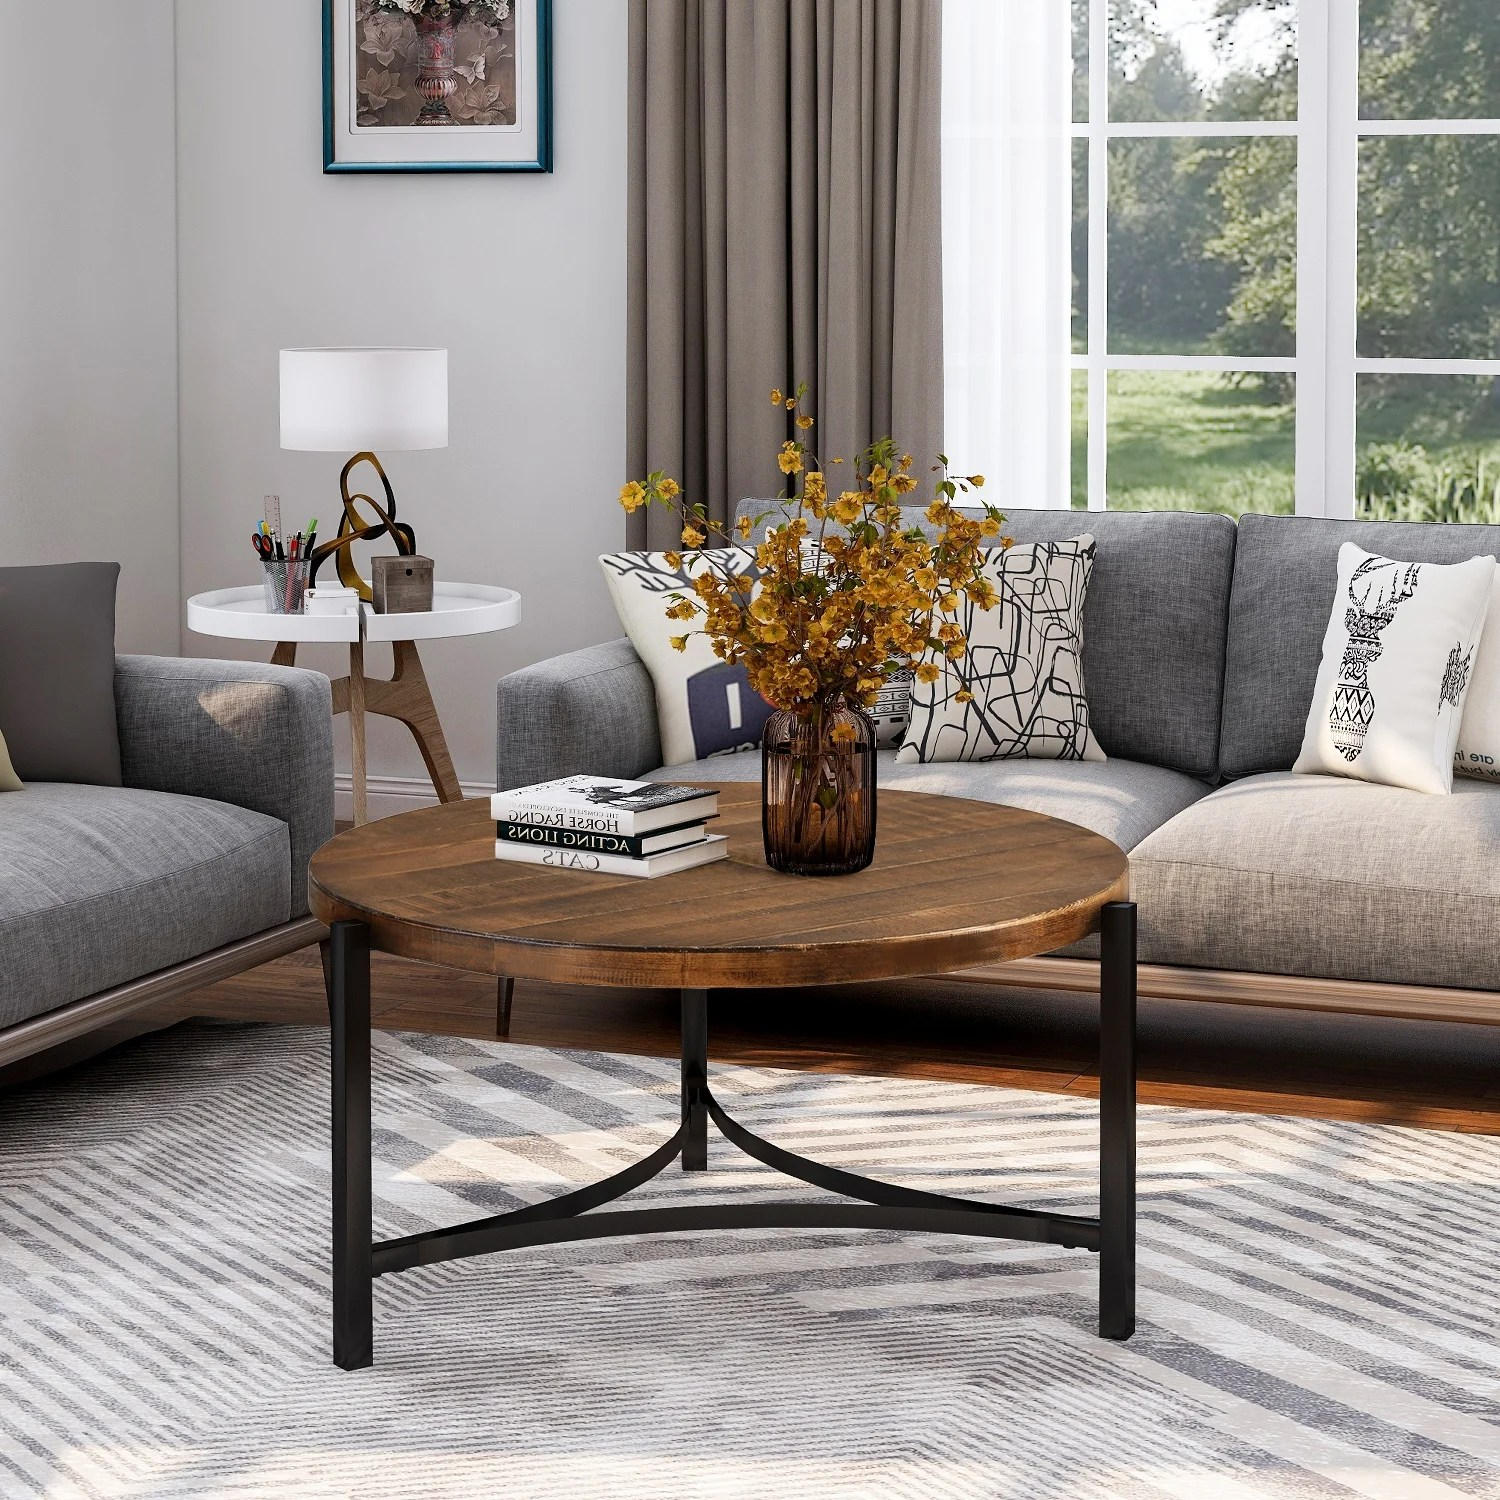 round coffee table industrial style tea table for living room